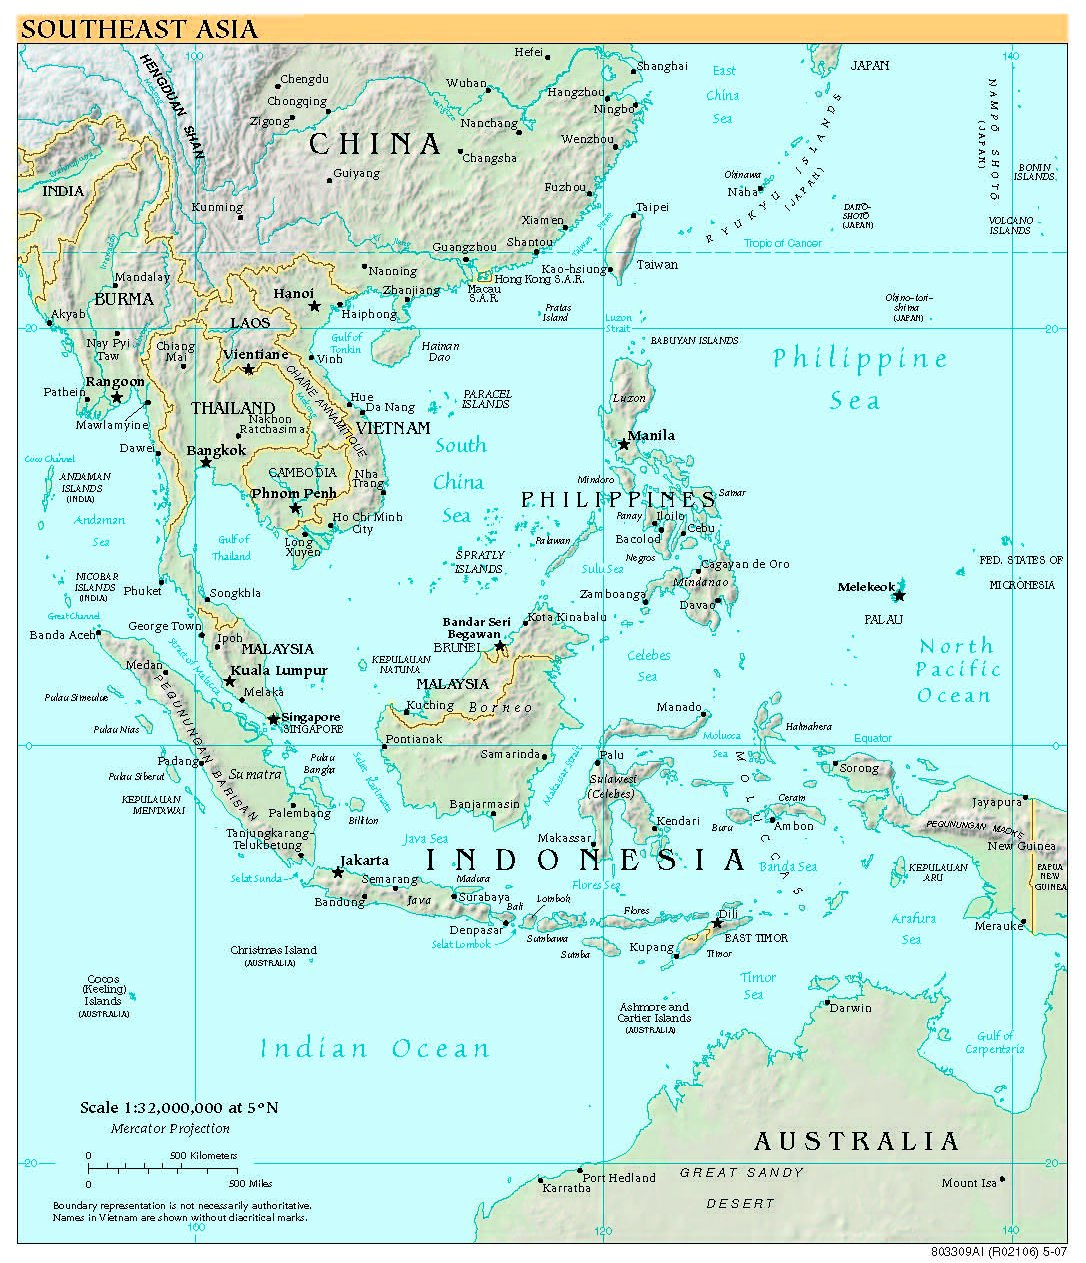 Map Of Asia High Resolution.Free High Resolution Map Of Southeast Asia